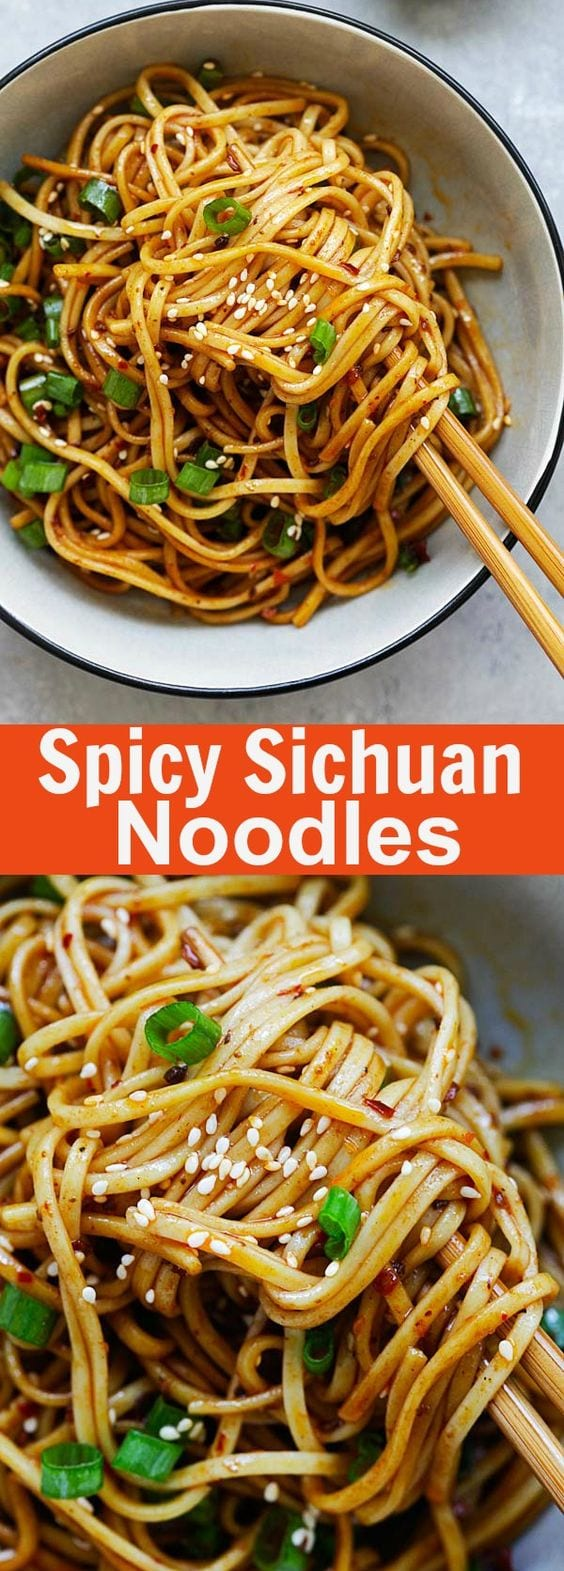 Spicy Sichuan Noodles - cold noodles in a spicy, savory and numbing Sichuan sauce. This Sichuan noodles recipe is so addictive and delicious | rasamalaysia.com